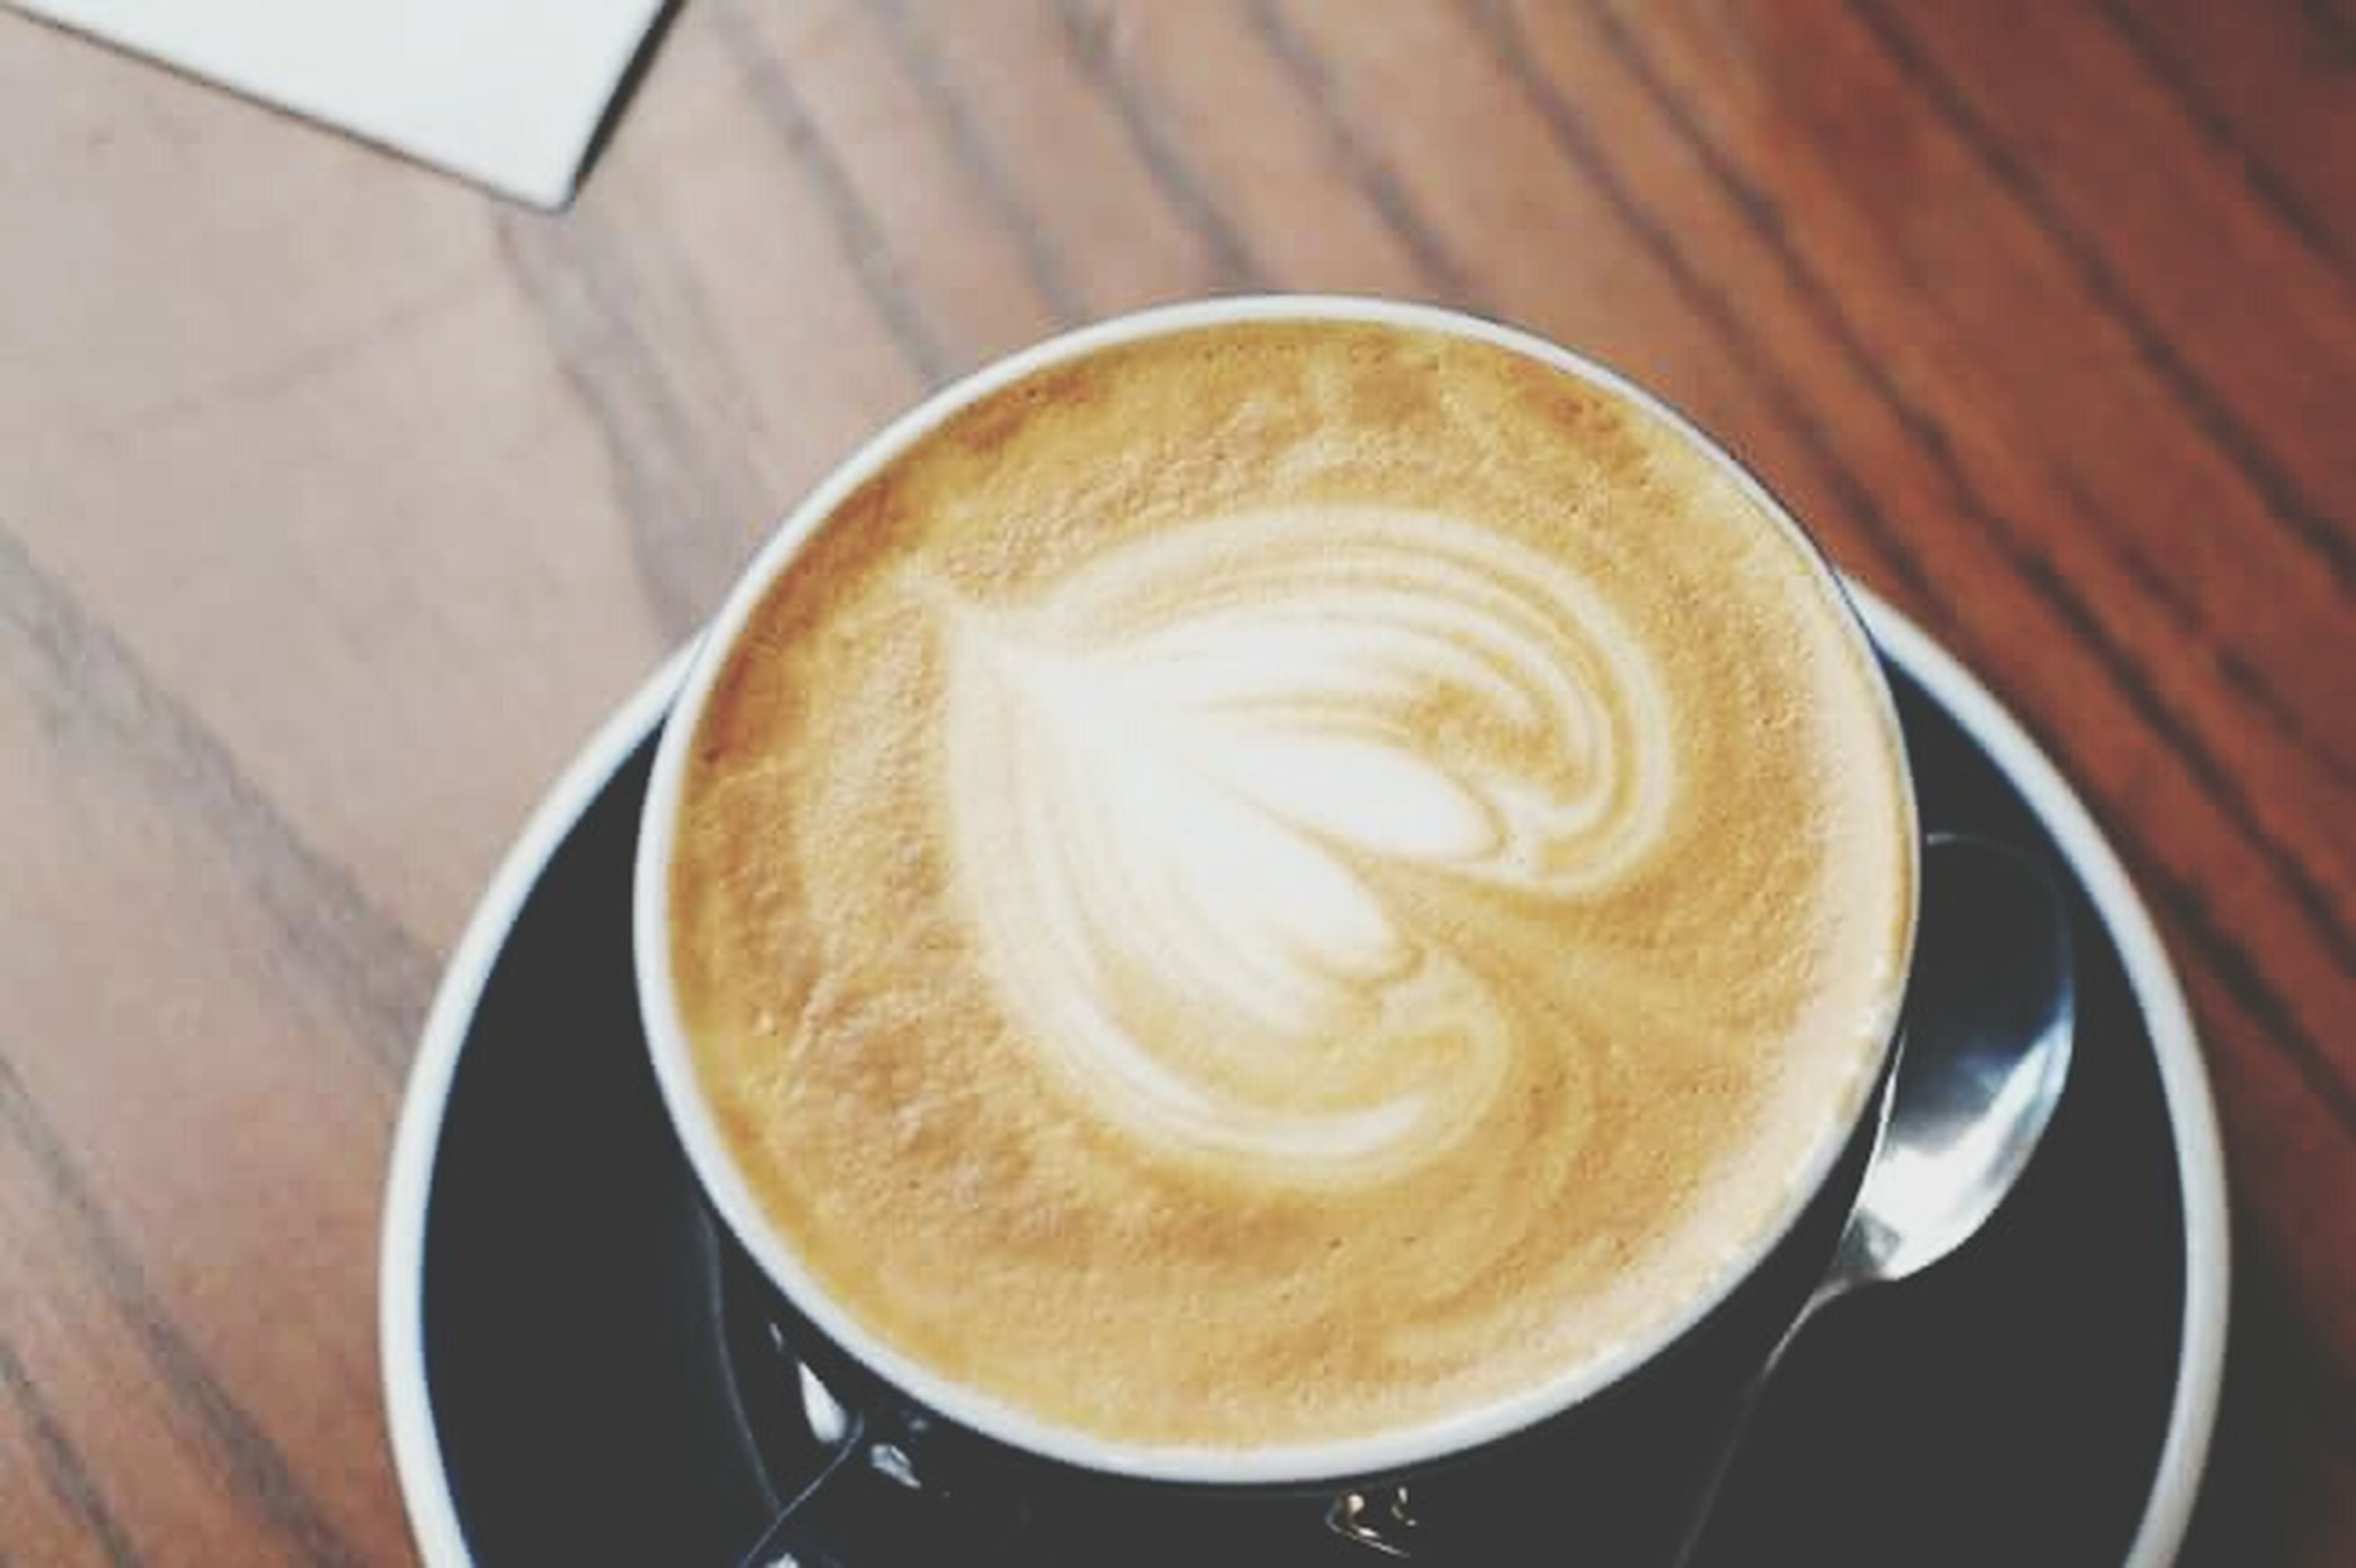 coffee - drink, drink, cappuccino, coffee cup, latte, food and drink, froth art, close-up, frothy drink, refreshment, table, wood - material, espresso, mocha, no people, indoors, freshness, day